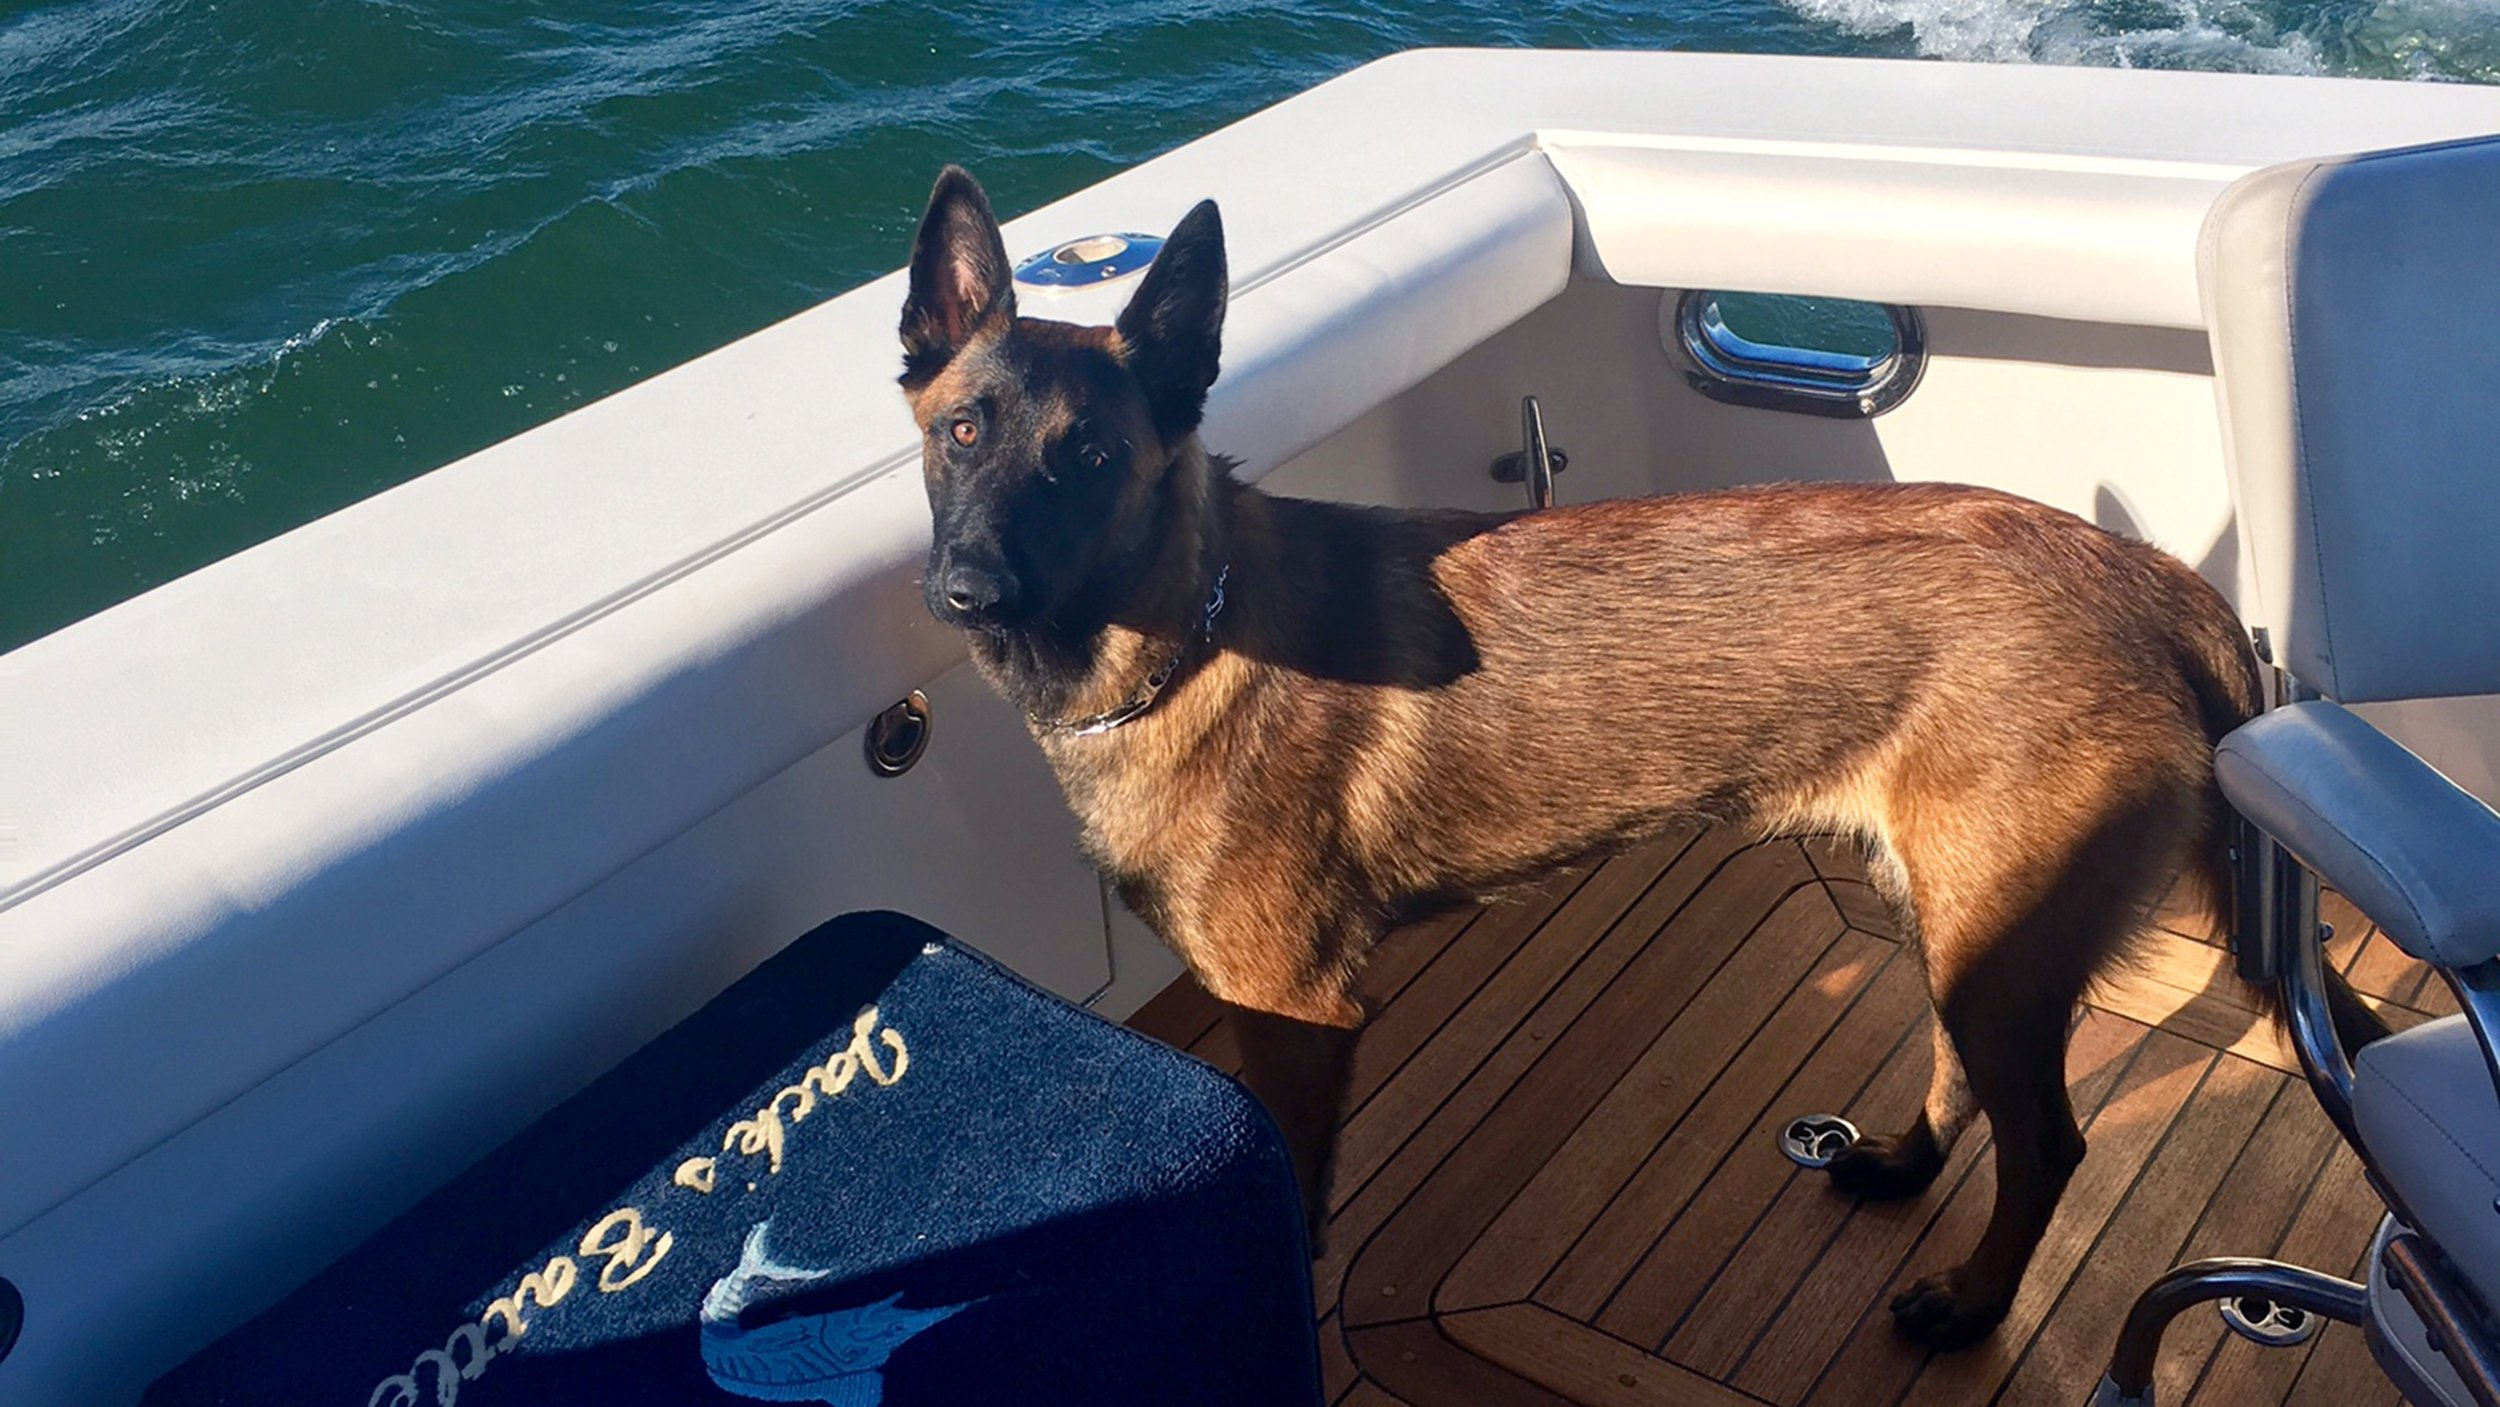 Missing dog reunited with family after tumbling overboard during boat trip